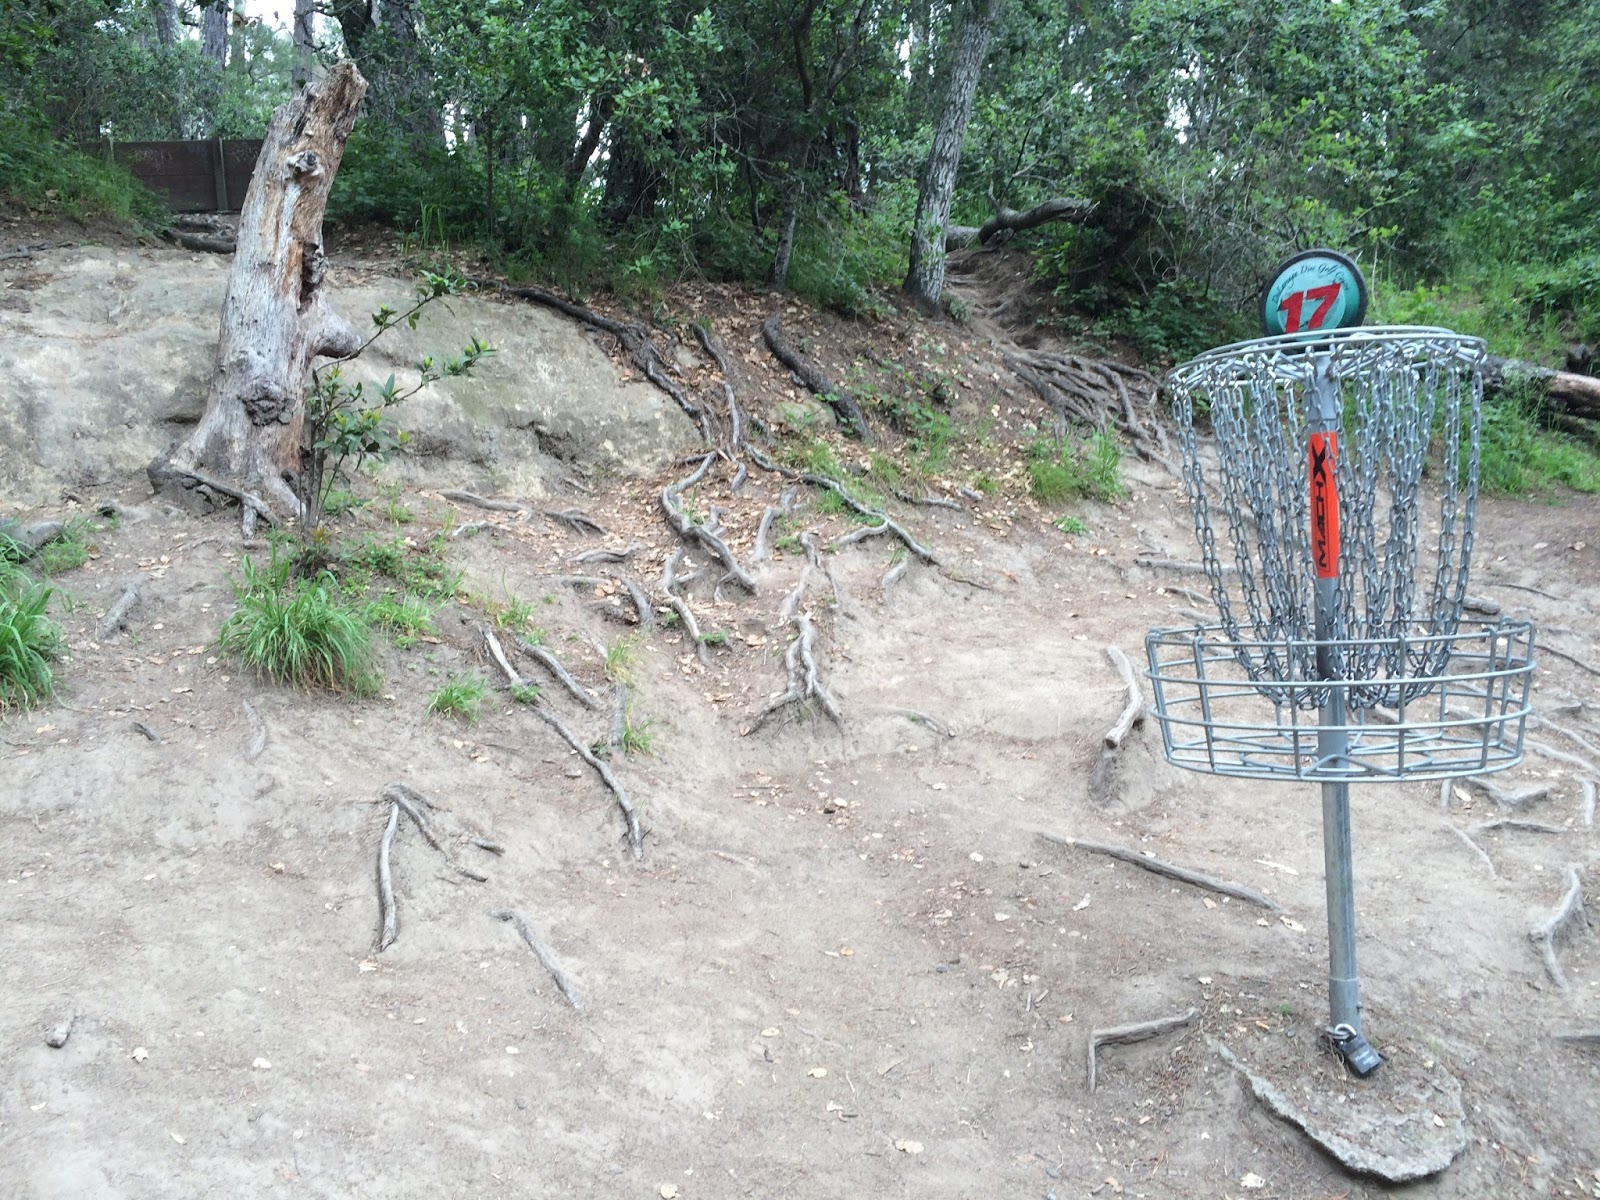 figure 2 wood 2016 hole 17 basket purisima formation on left